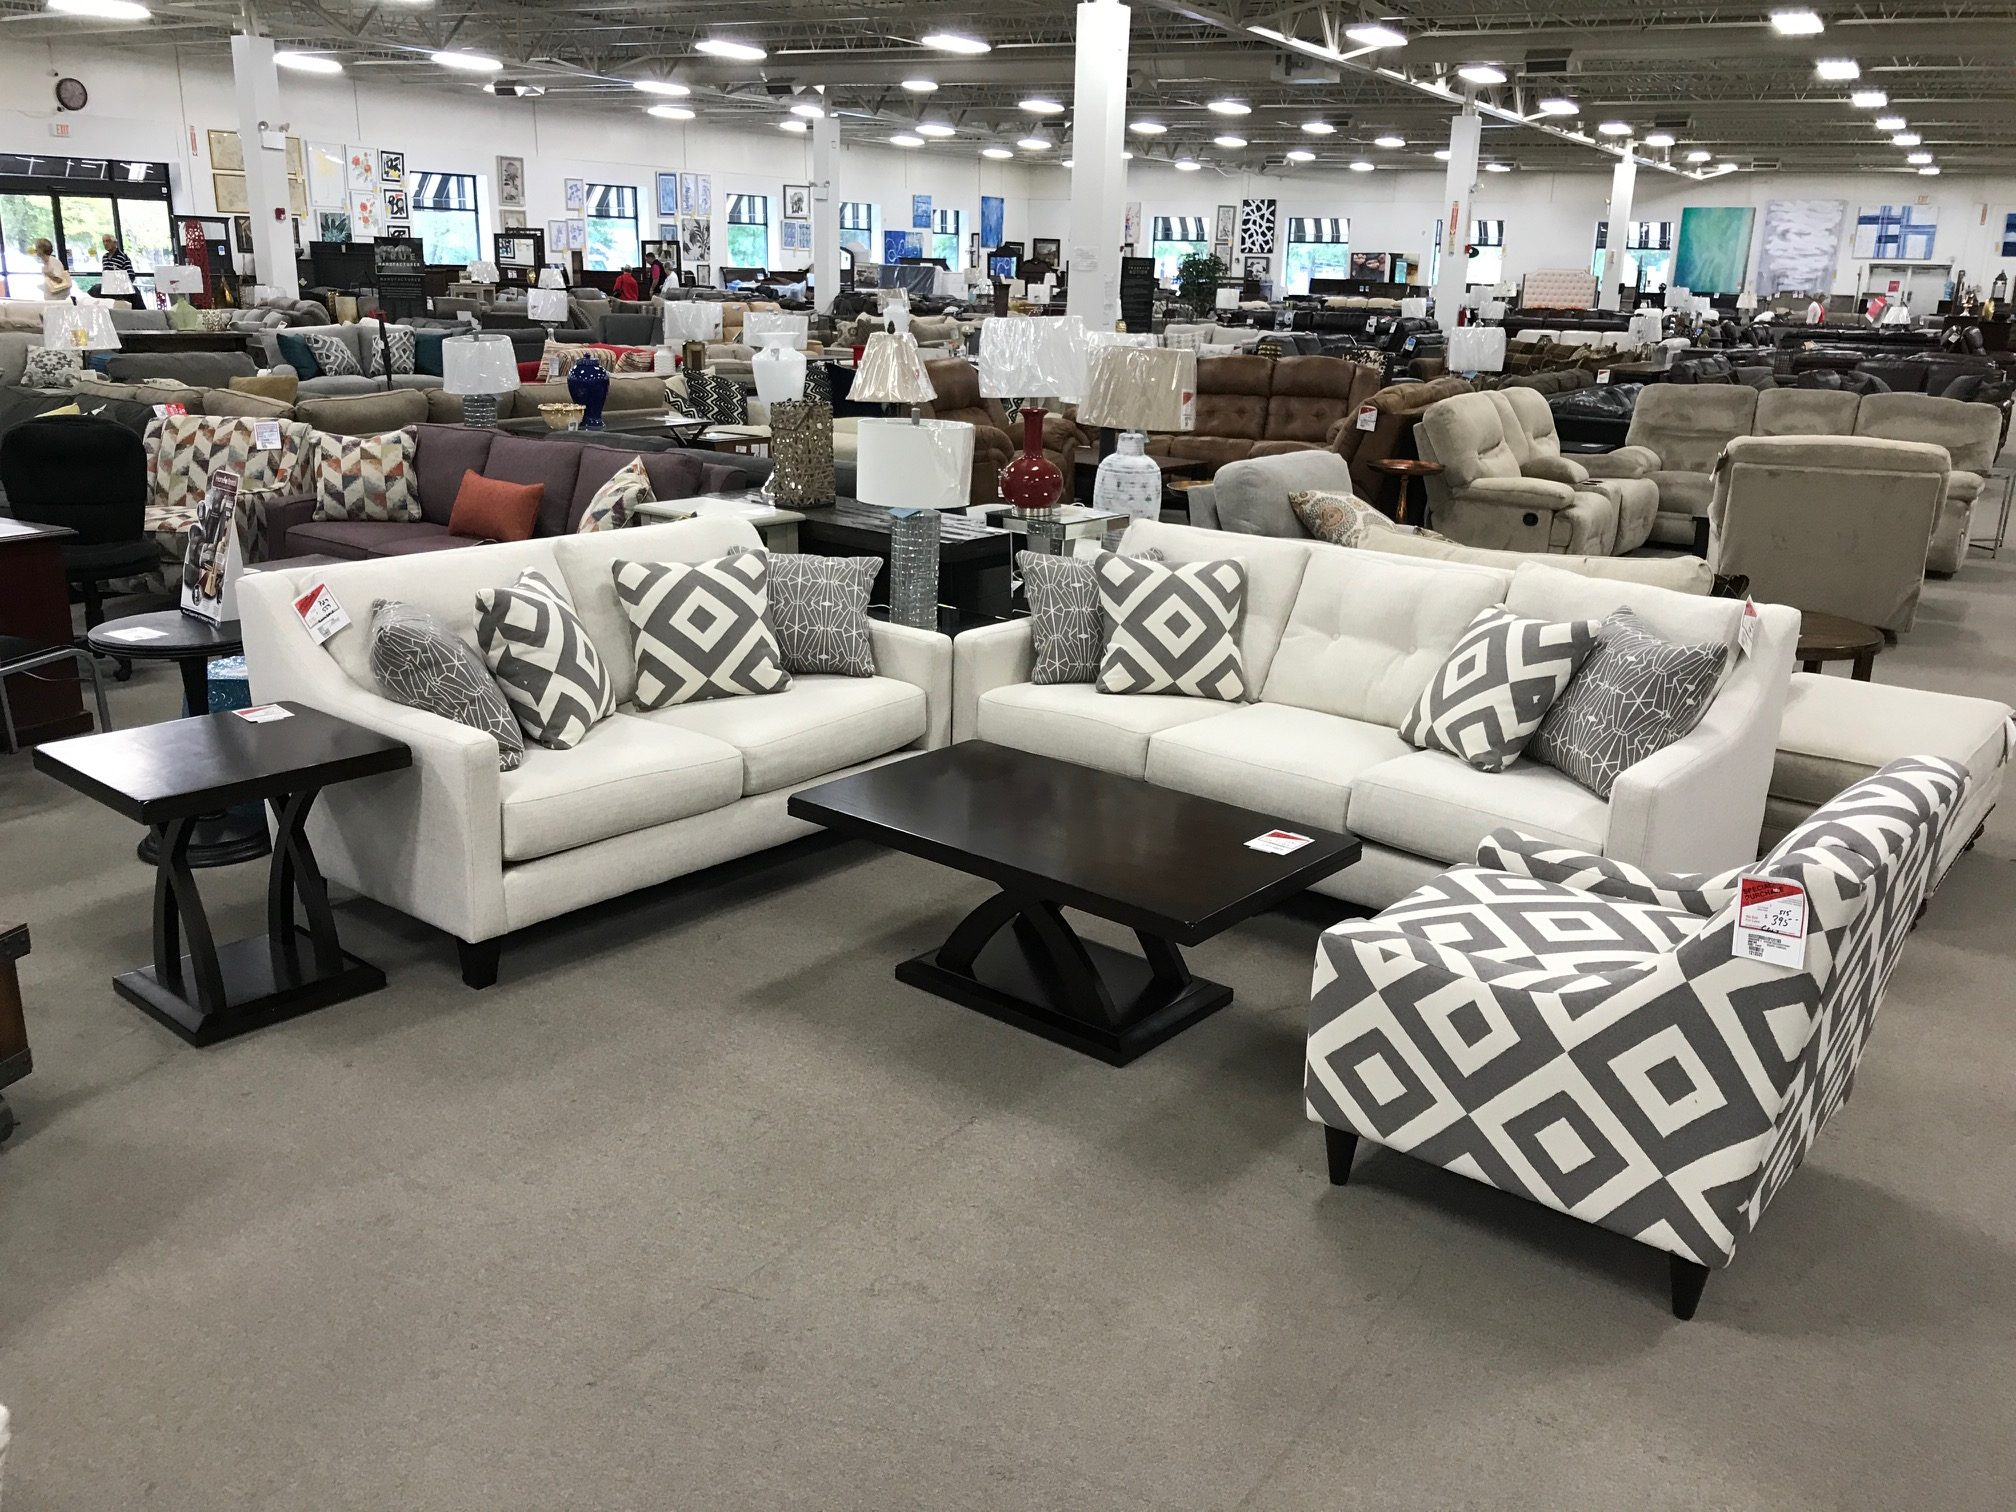 Sugarshack Living Room Set Heavner Furniture Market